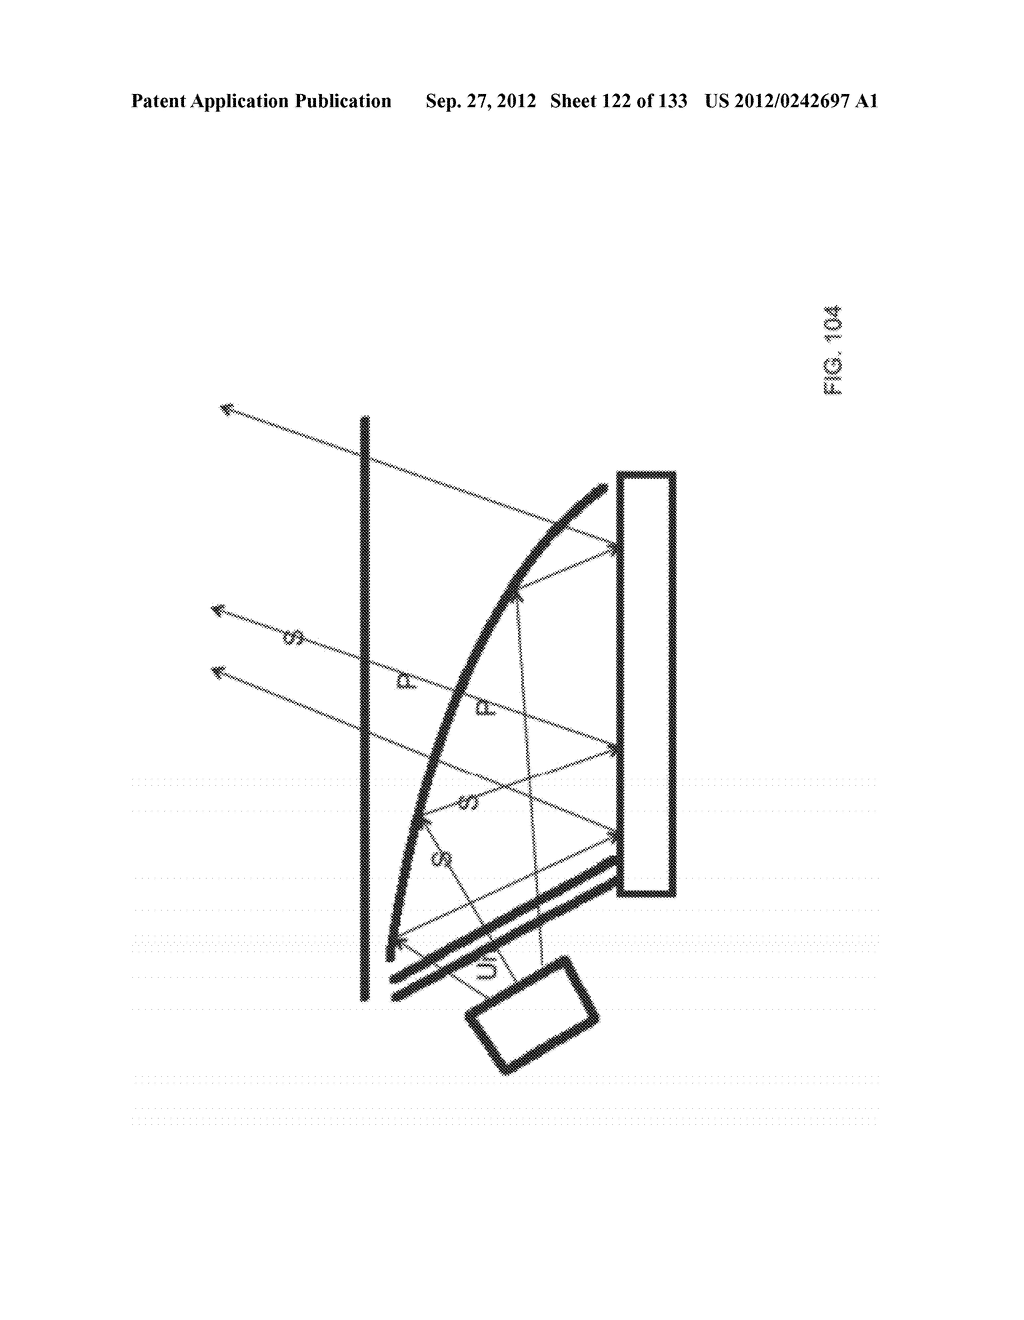 SEE-THROUGH NEAR-EYE DISPLAY GLASSES WITH THE OPTICAL ASSEMBLY INCLUDING     ABSORPTIVE POLARIZERS OR ANTI-REFLECTIVE COATINGS TO REDUCE STRAY LIGHT - diagram, schematic, and image 123